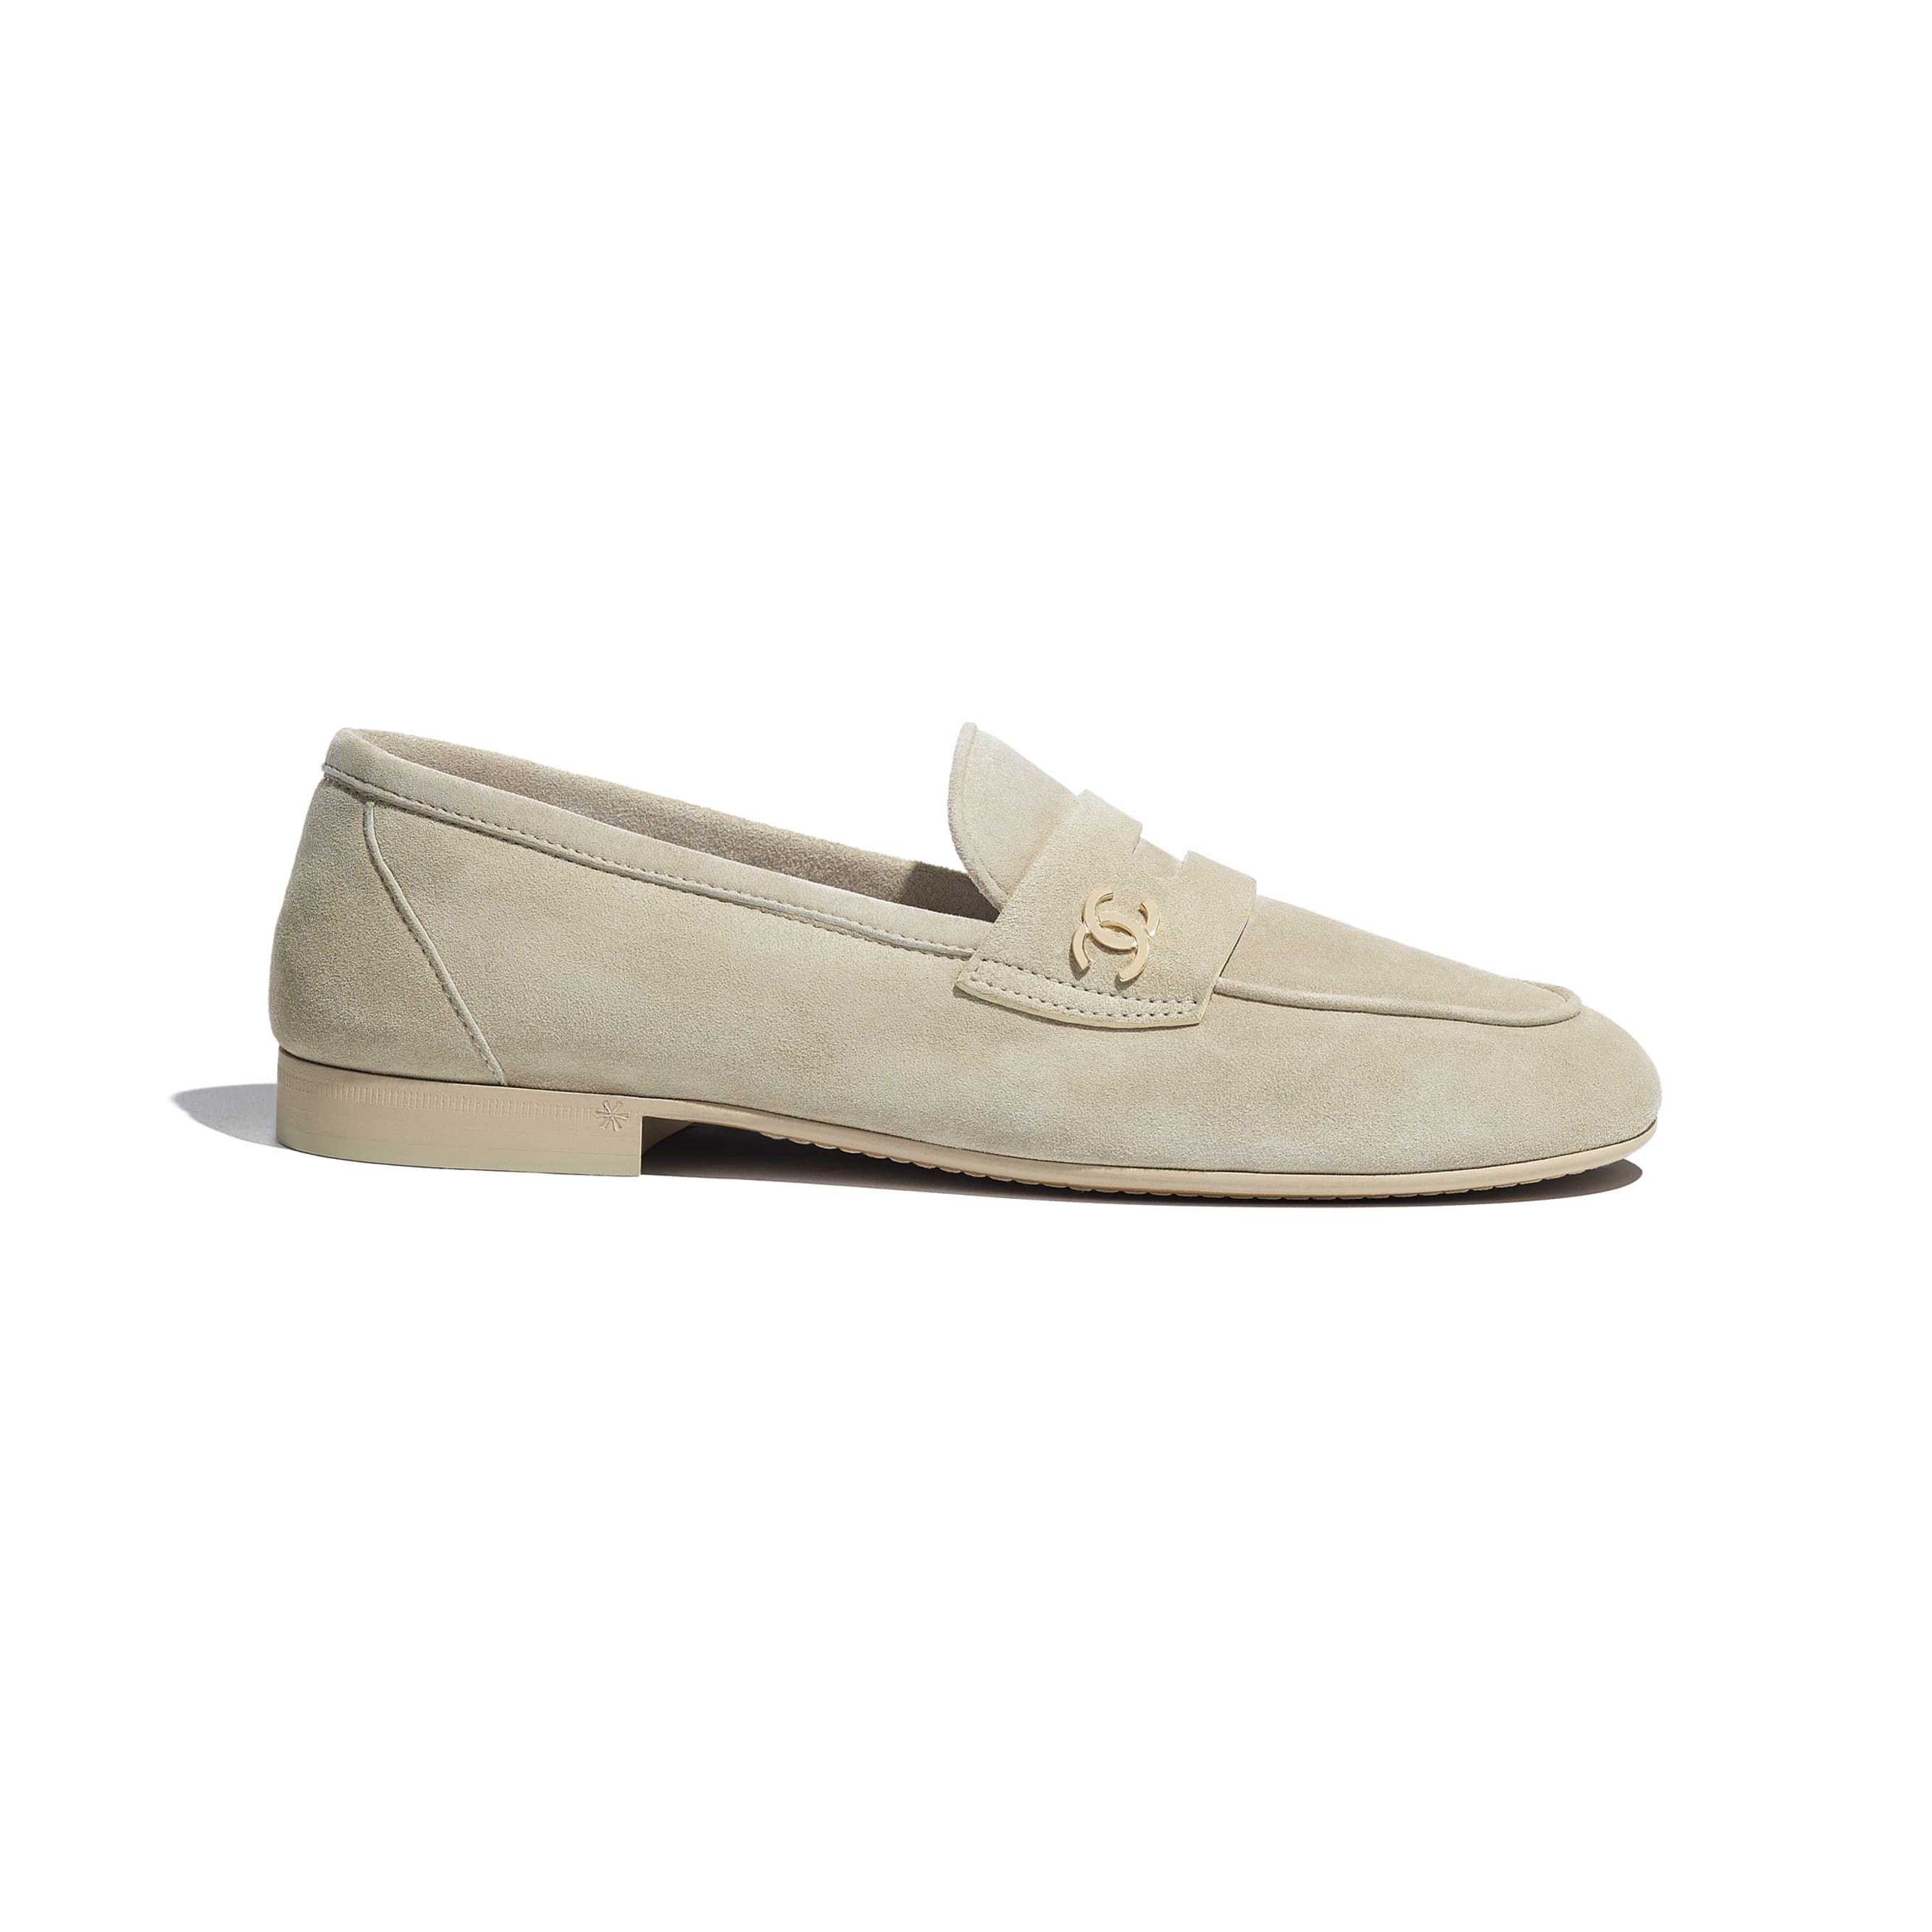 Loafers - Beige - Suede Calfskin - CHANEL - Default view - see standard sized version